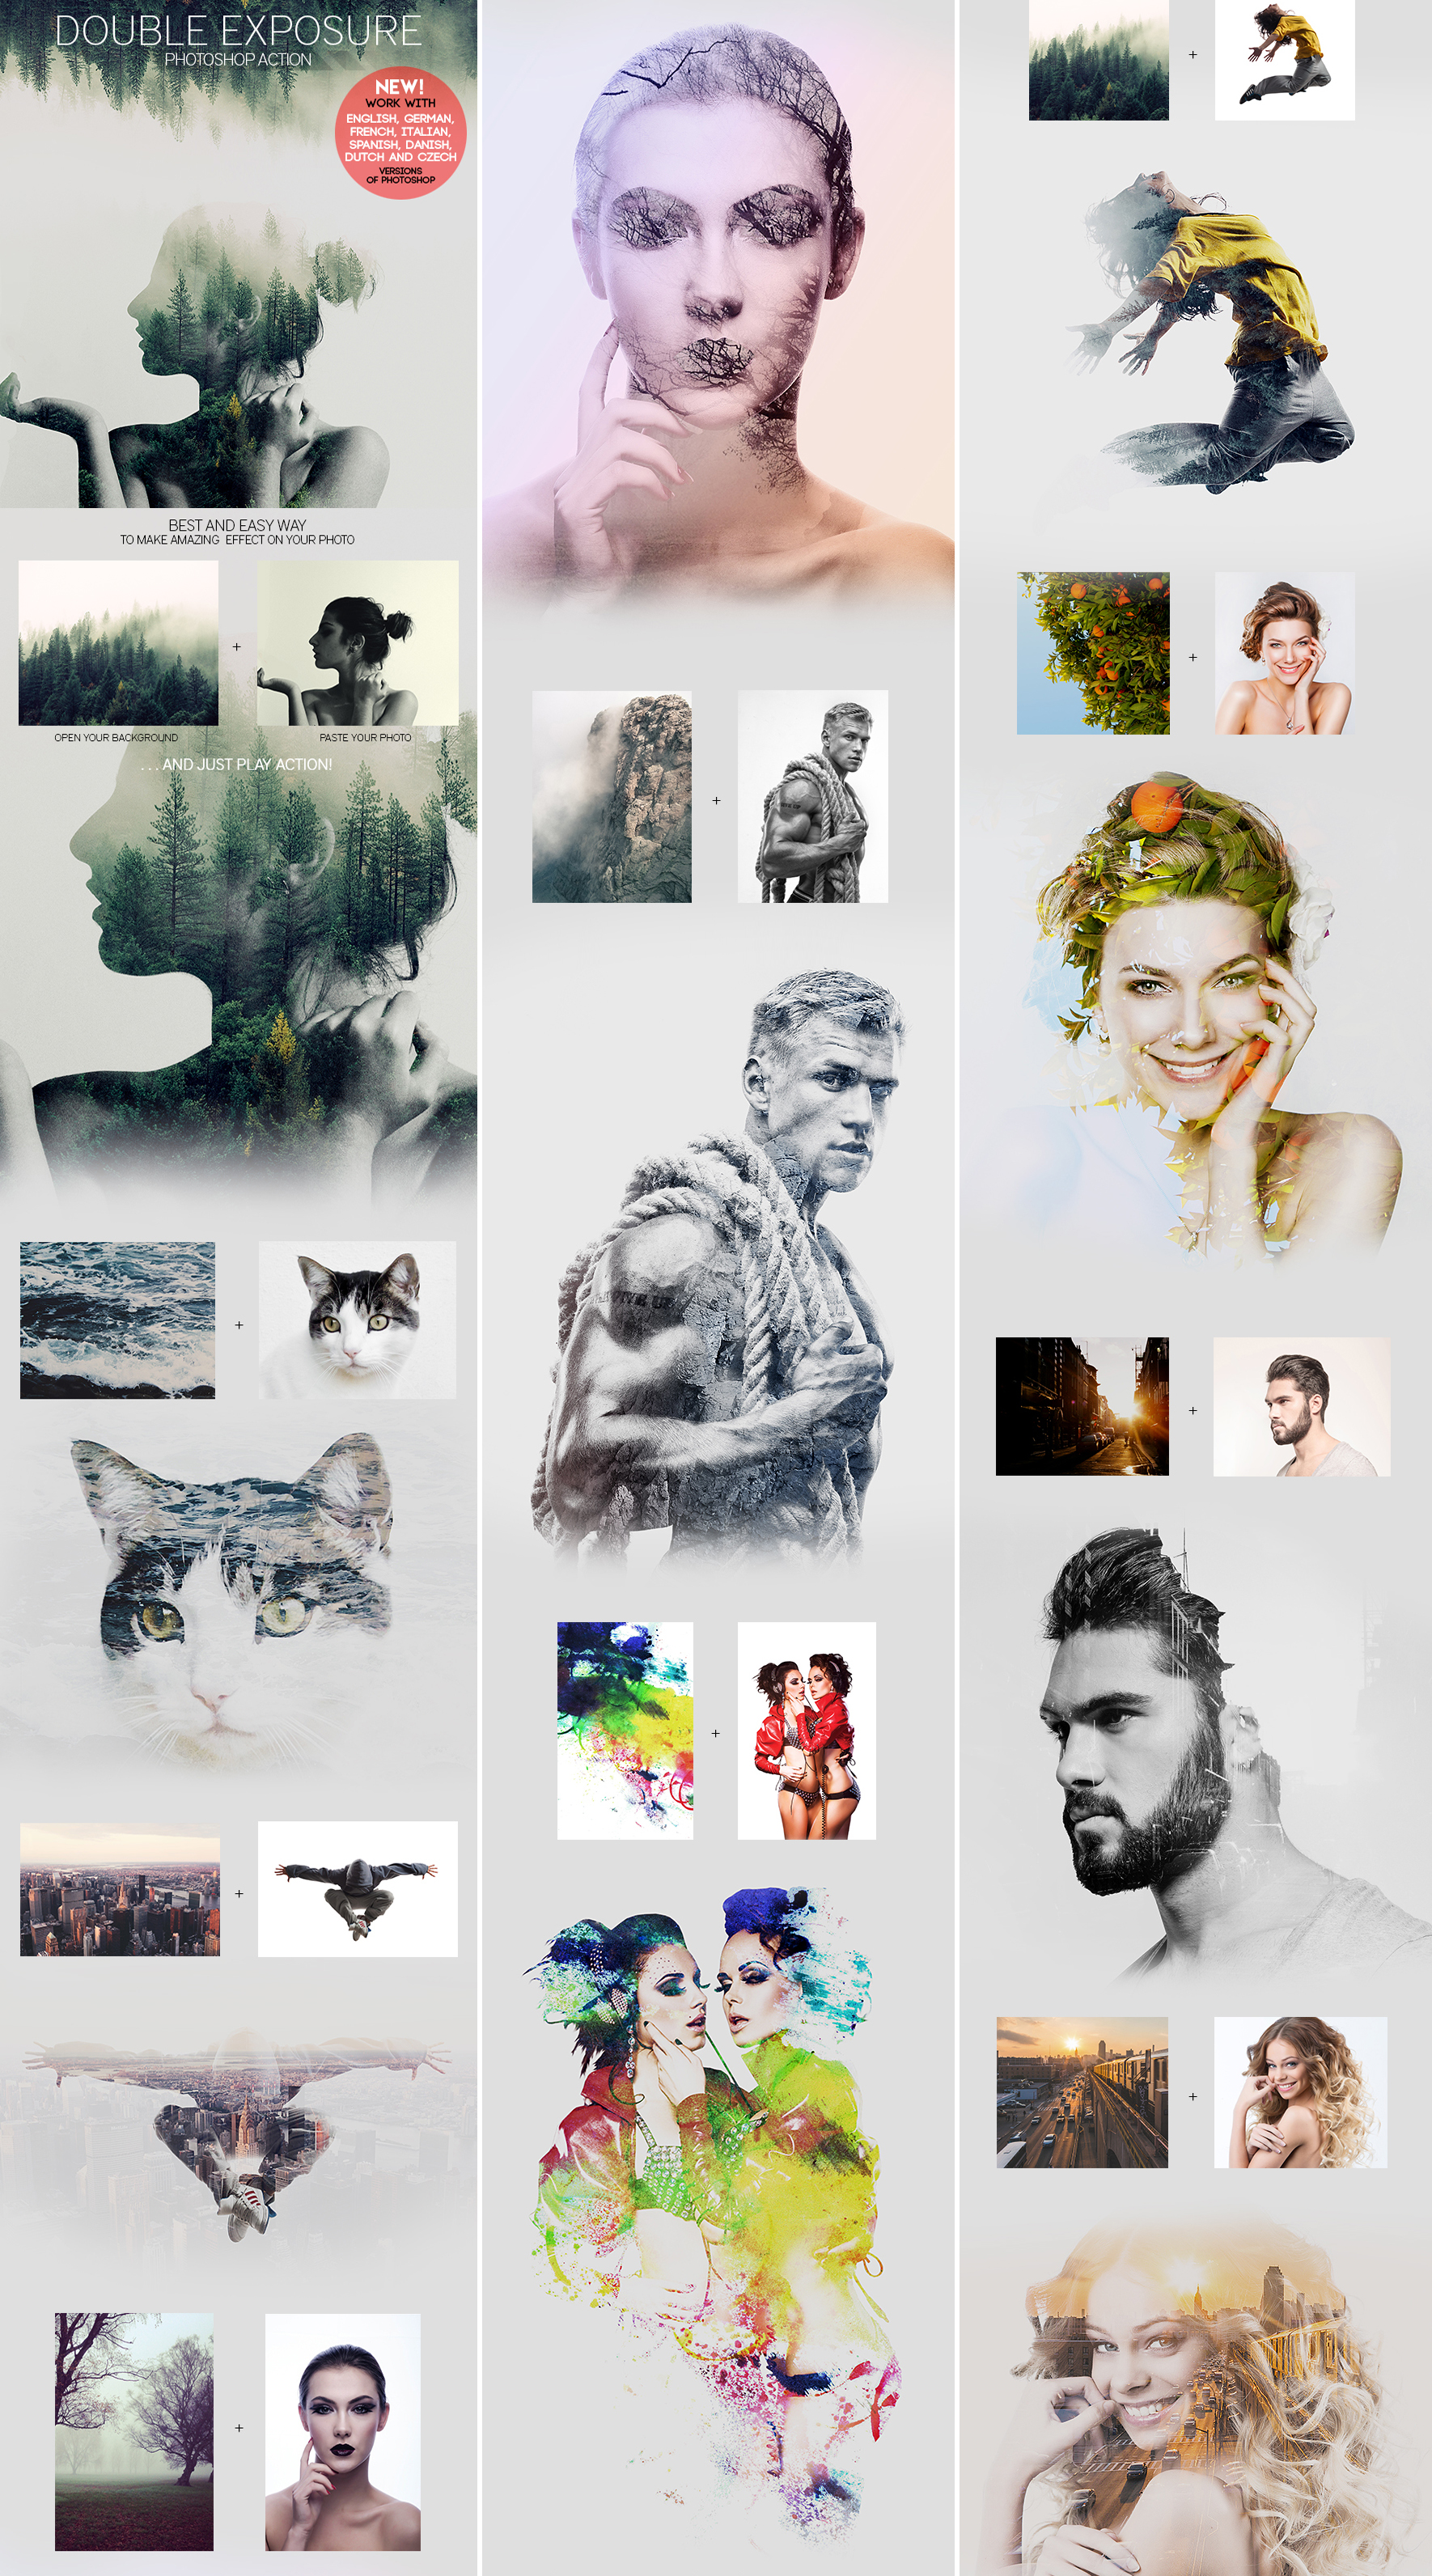 Double Exposure Photoshop Action by GraphicAssets on DeviantArt